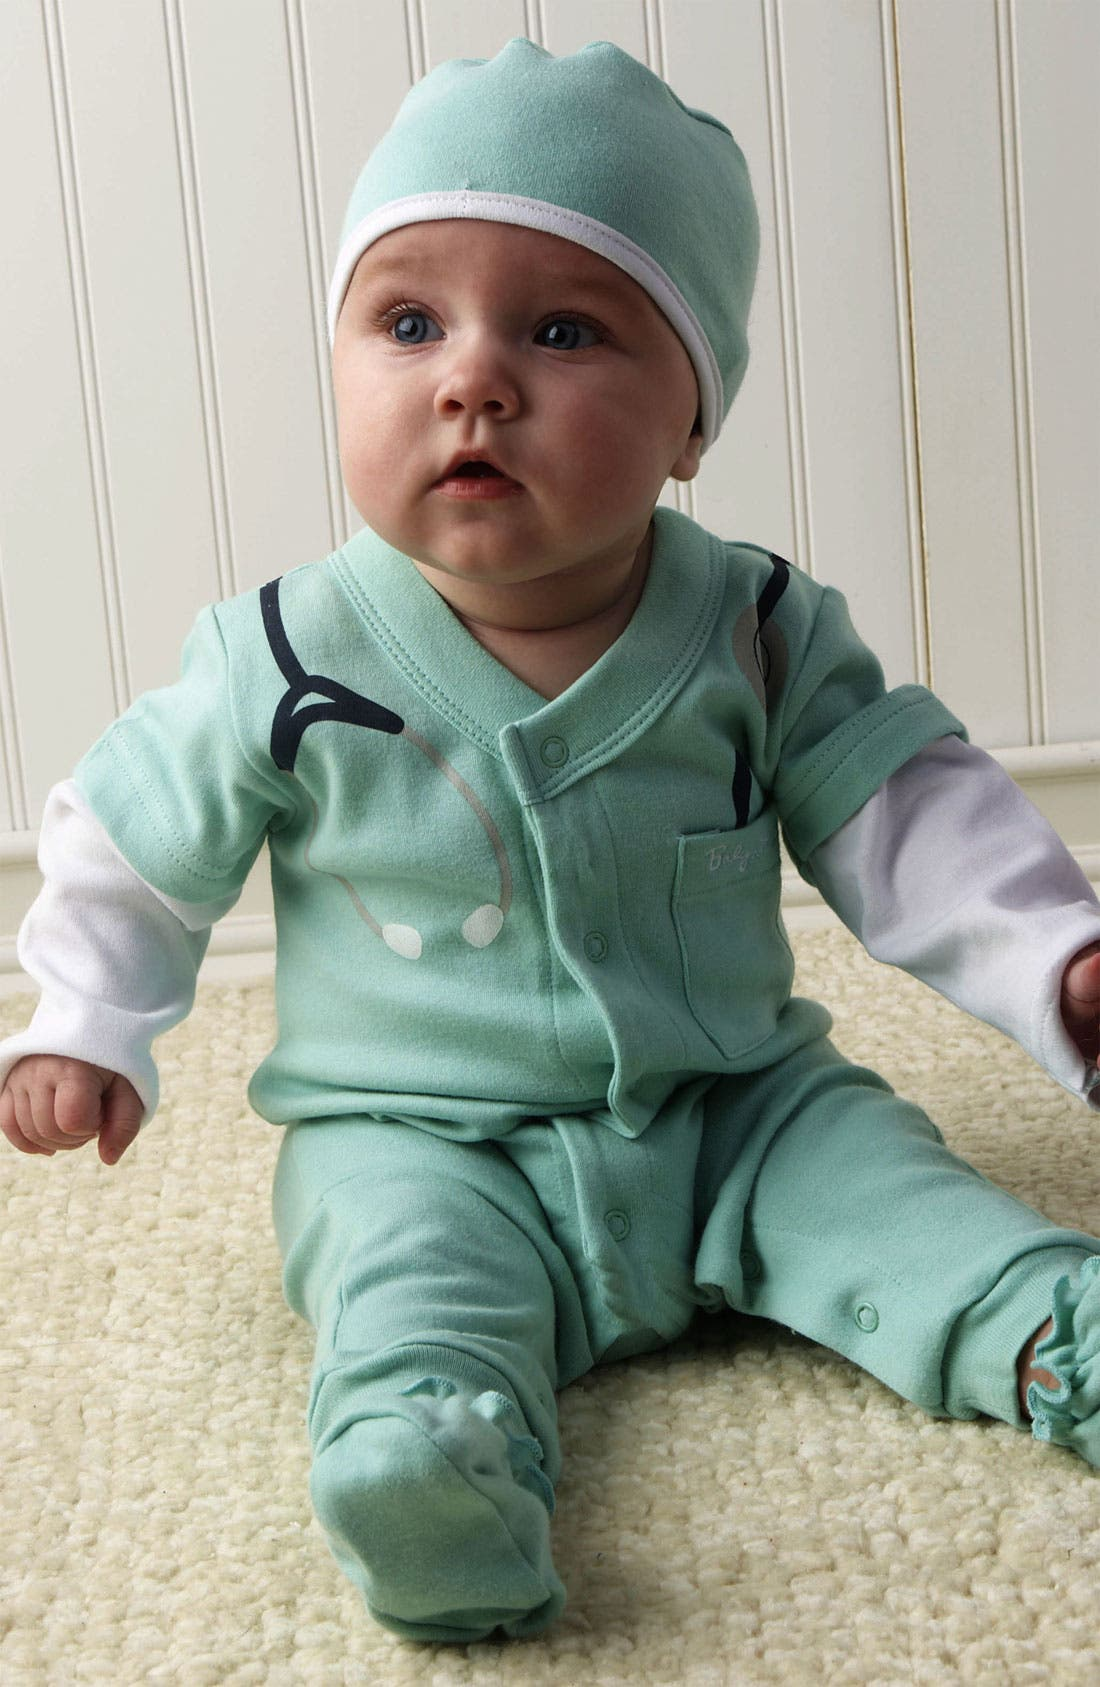 Alternate Image 1 Selected - Baby Aspen 'Baby MD' Romper Set (Baby)